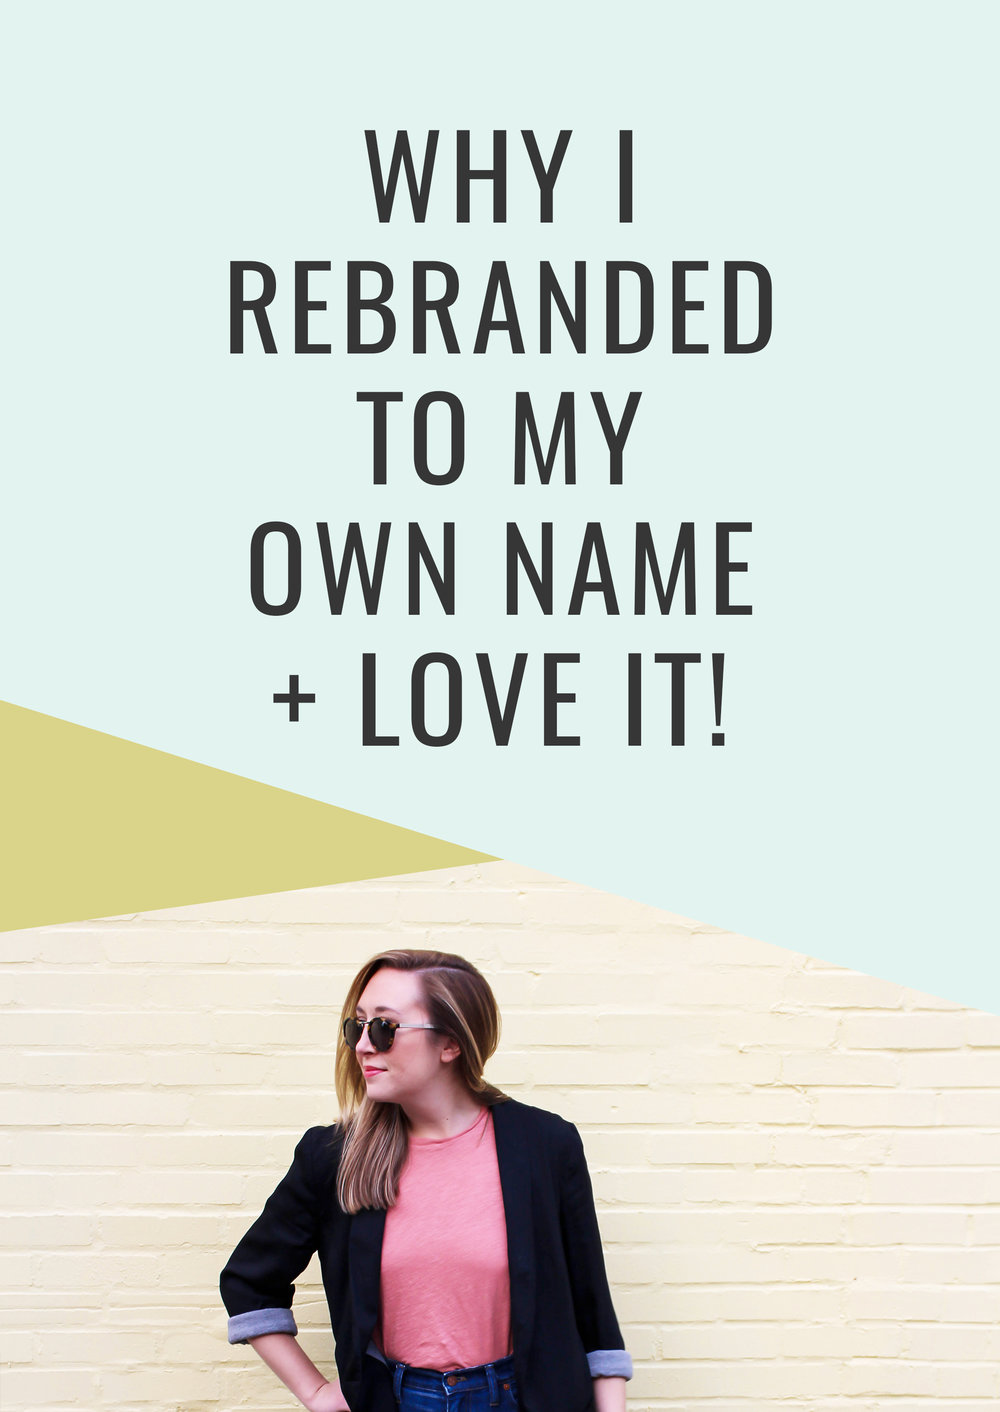 Why I Rebranded to My Own Name and Love It